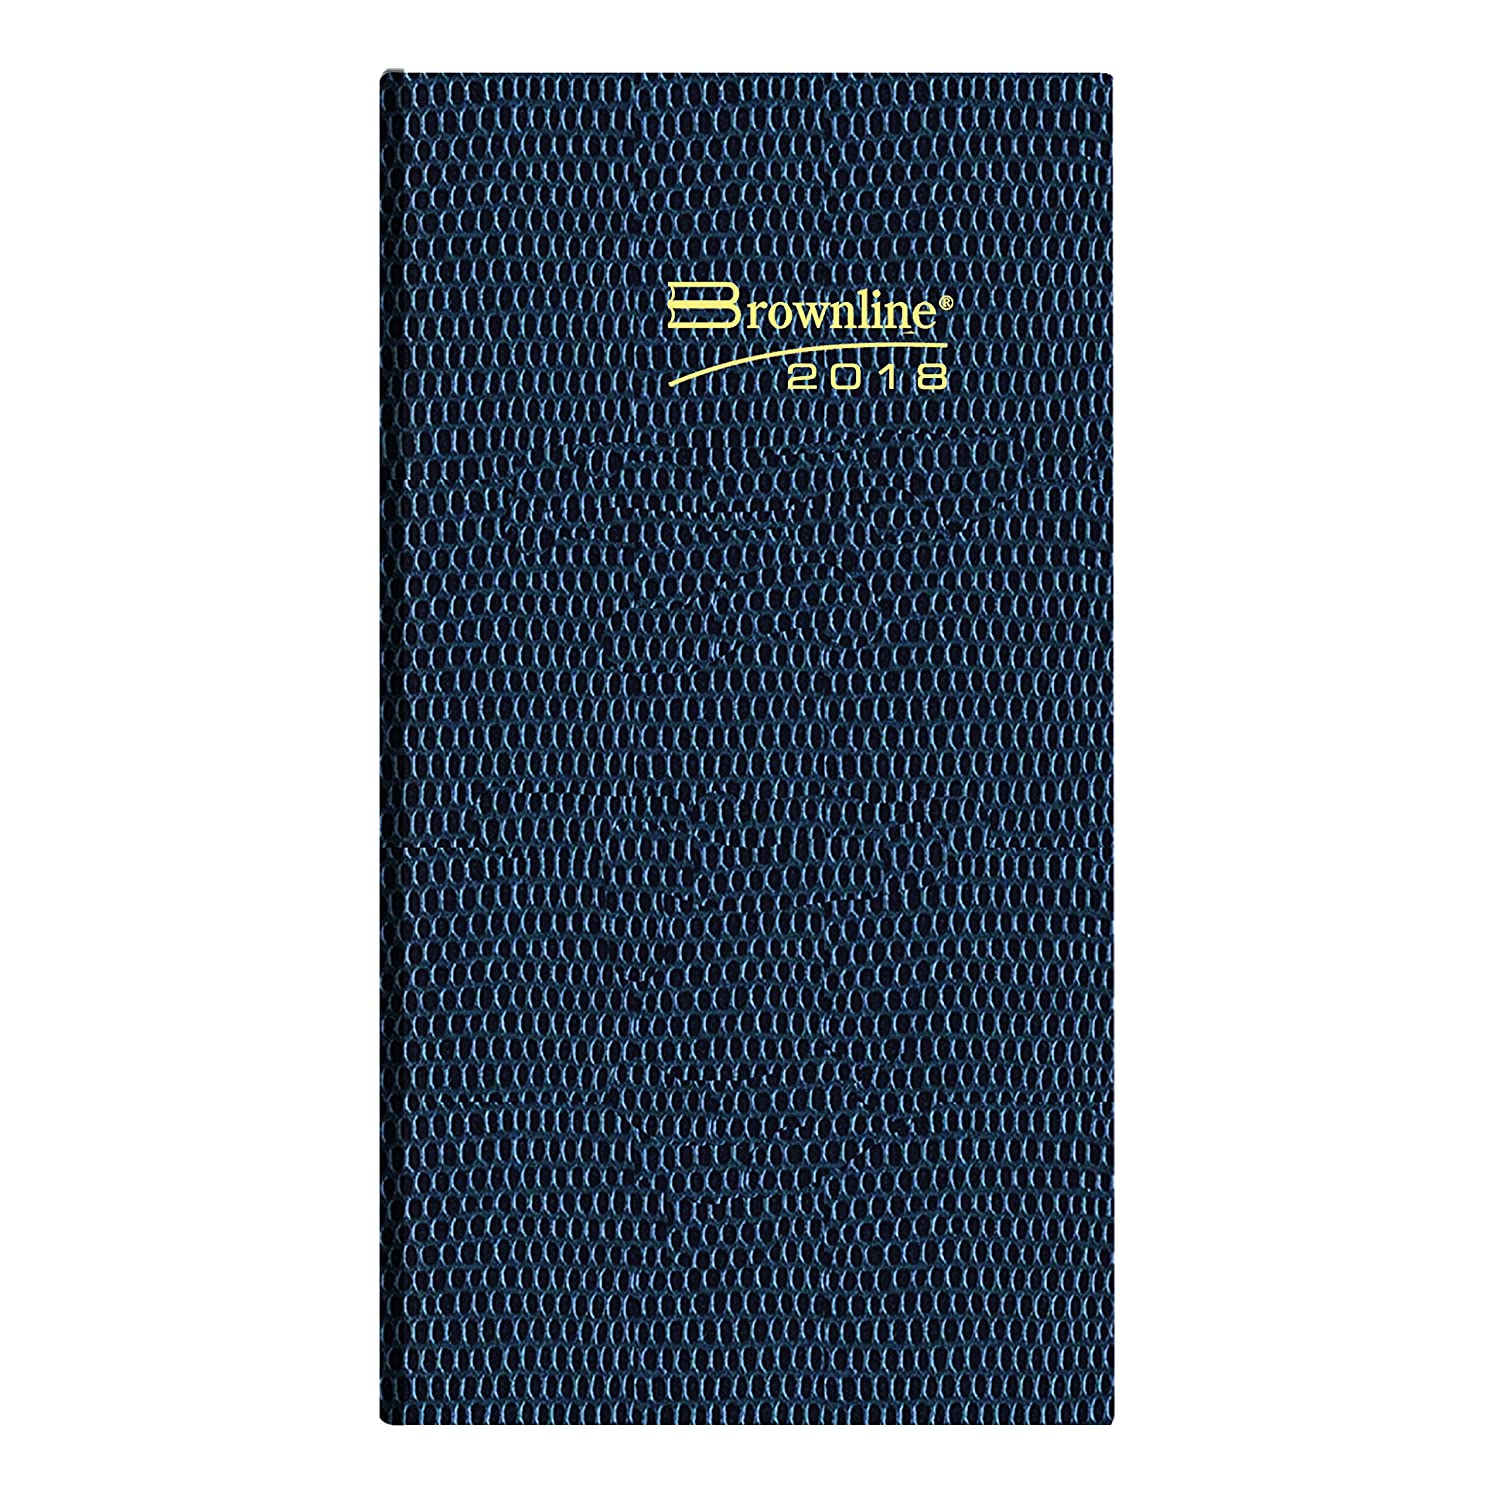 Brownline CB401.ASX-2019 2019 Daily Pocket Planner, Assorted Colours, English, 6 x 3-1/8 Colour May Vary Blueline Canada CB401.ASX-19